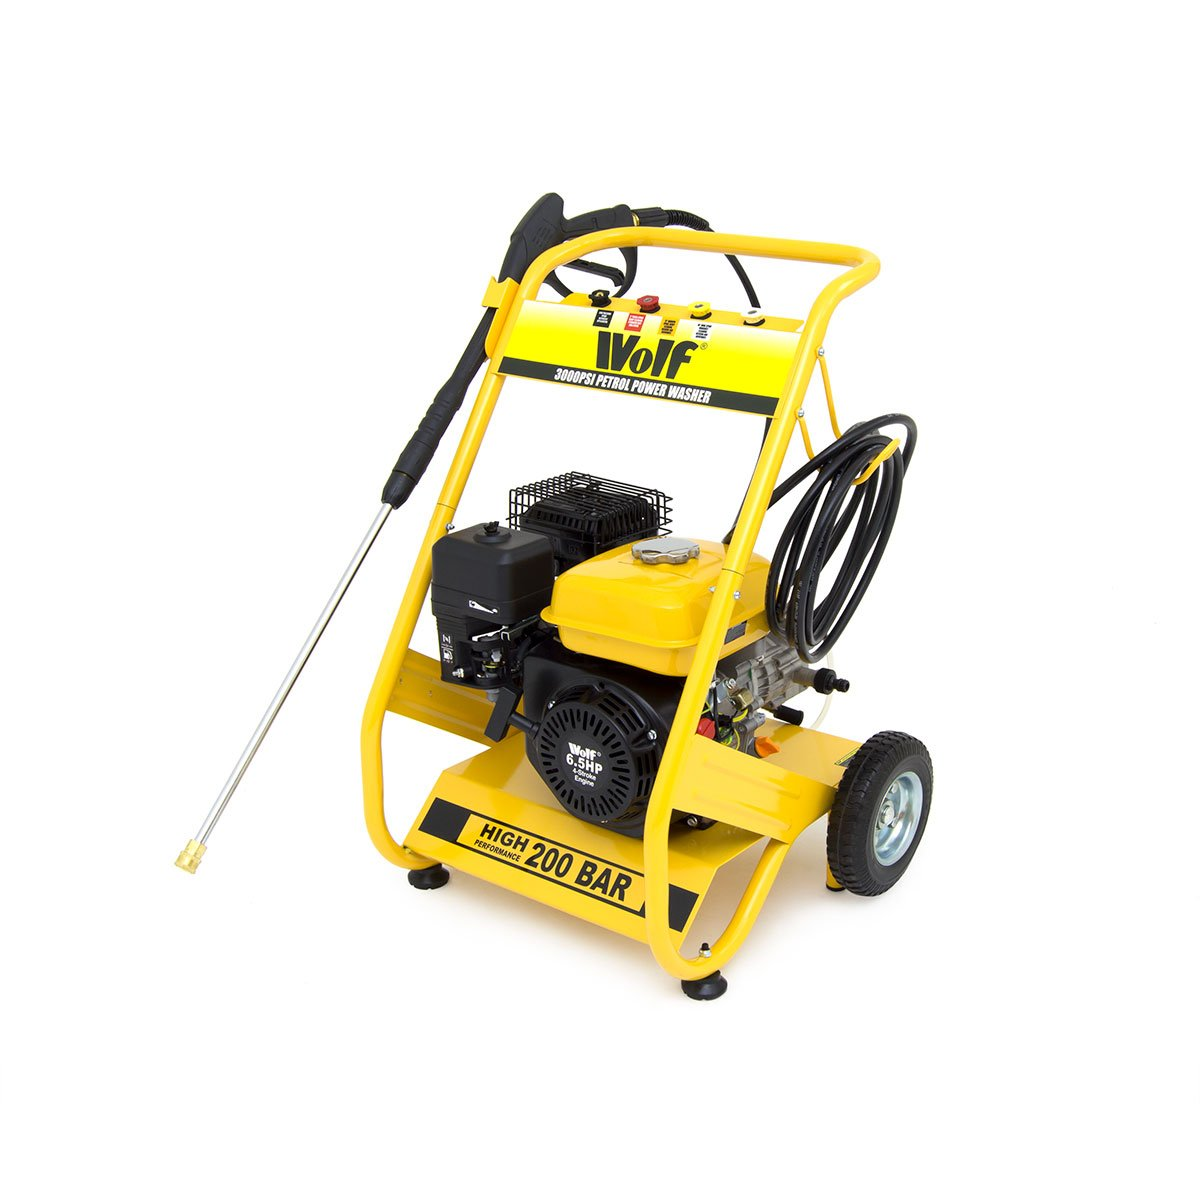 Wolf Petrol Pressure Washer 3000psi 200bar 65hp 4 Stroke Motor Wiring Diagram Free Download Driven Jet Power With Quick Fit Release Nozzles 2 Year Warranty Diy